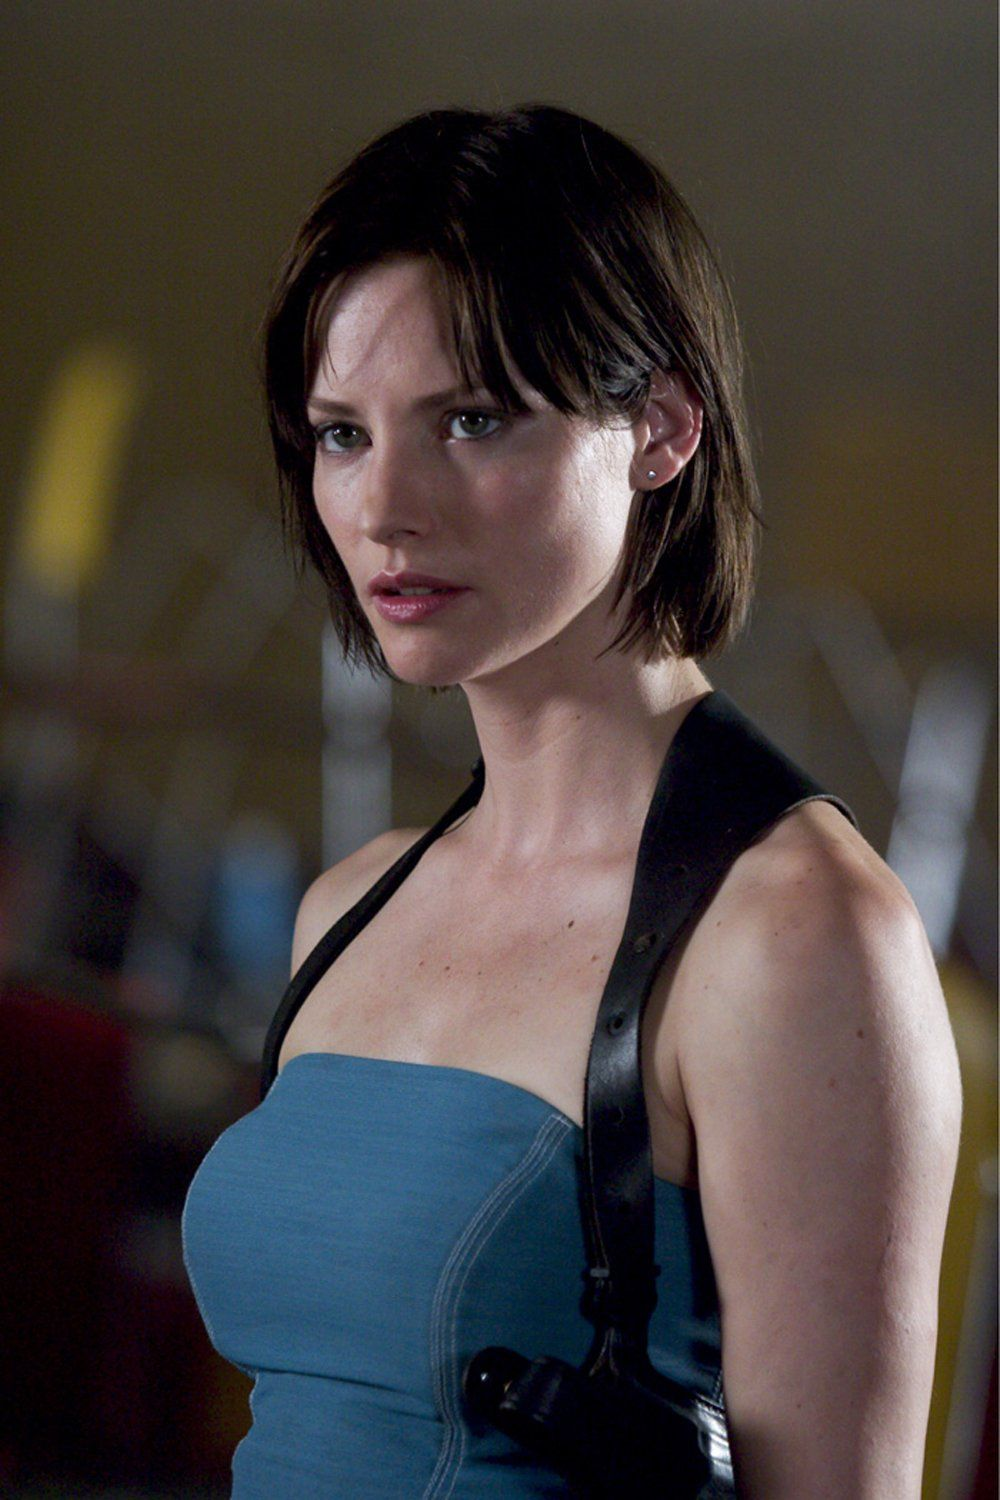 Sienna guillory tits nude (48 photos), Twitter Celebrity photo